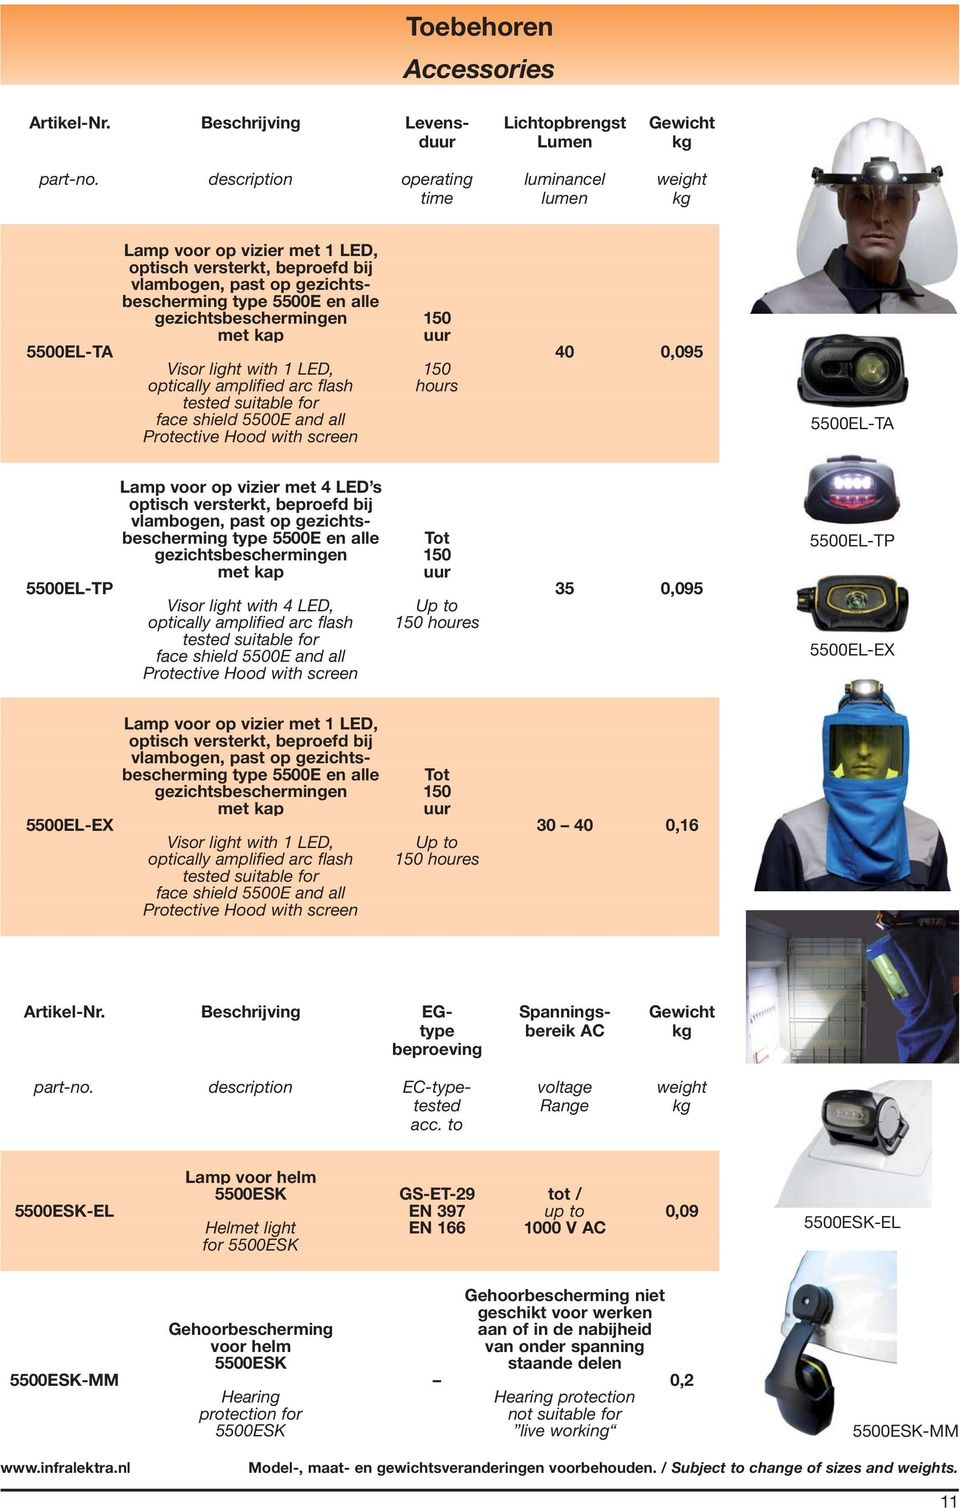 150 met kap uur 5500EL-TA 40 0,095 Visor light with 1 LED, 150 optically amplified arc flash hours tested suitable for face shield 5500E and all Protective Hood with screen 5500EL-TA Lamp voor op